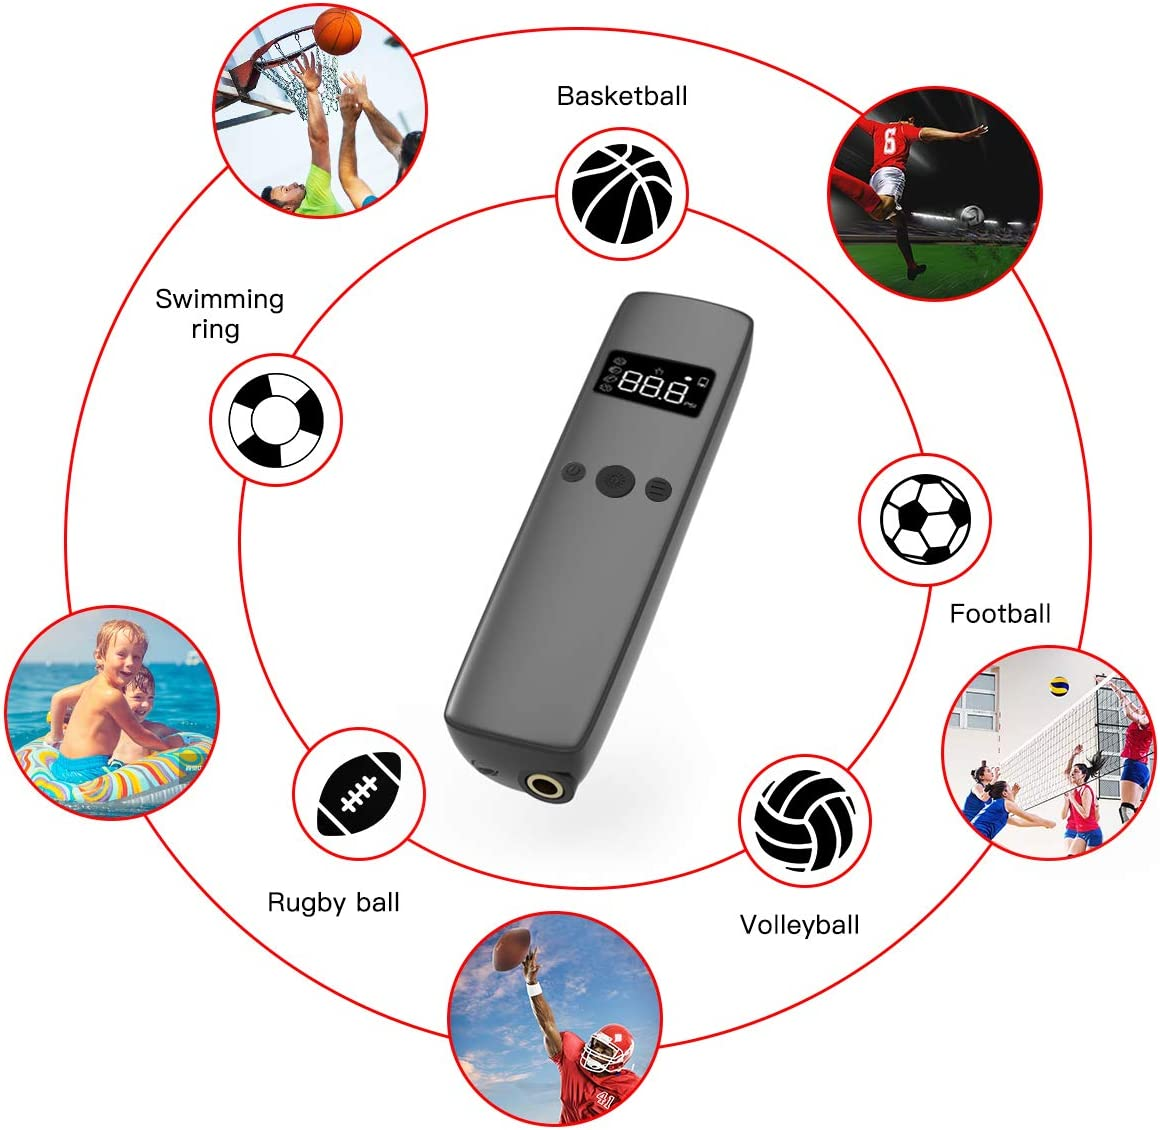 Cadrim Electric Ball Pump Smart Ball Inflator and Handheld Air Inflation with 2 Needle and 1 Nozzle for Sports Ball Soccer Basketball Football Volleyball Rugby